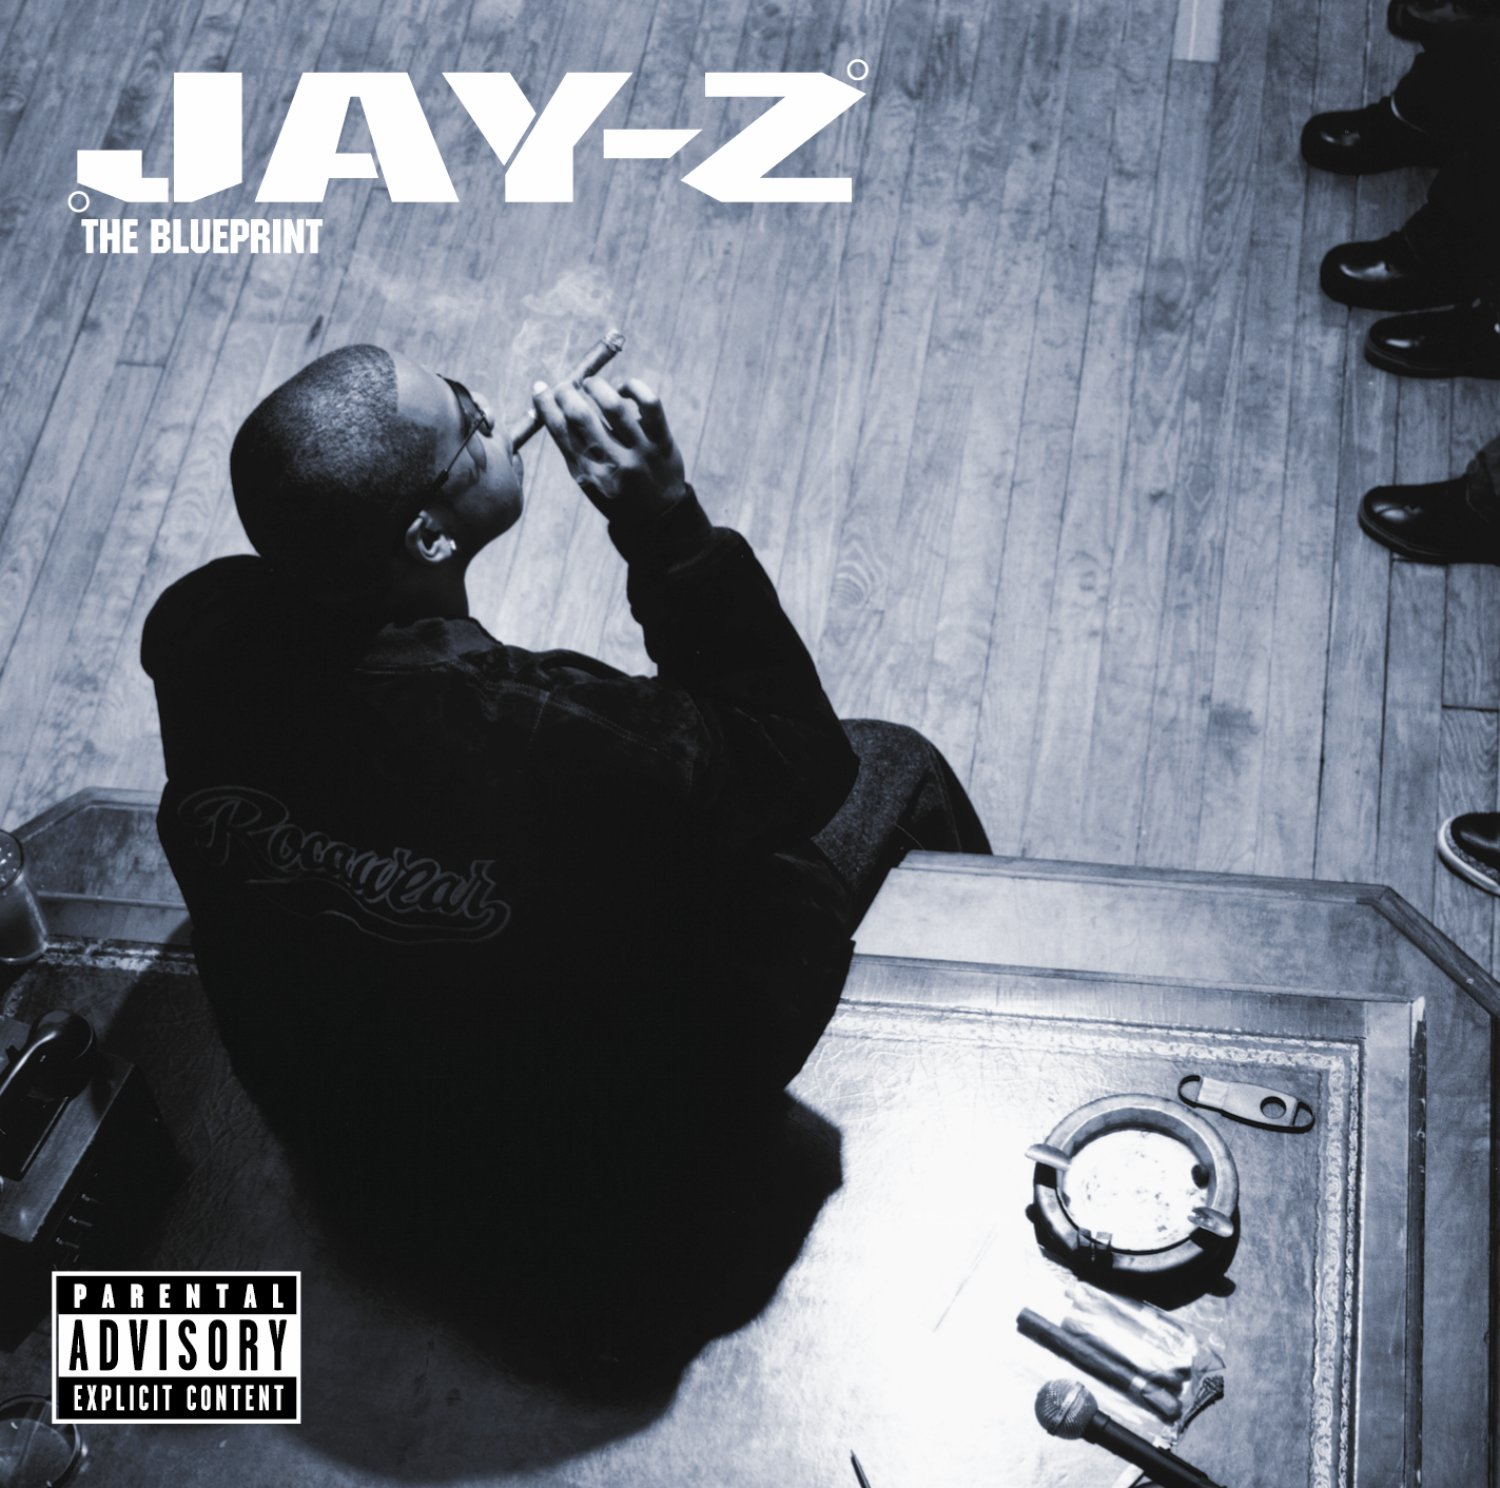 How well do you remember the lyrics to jay zs the blueprint how well do you remember the lyrics to jay zs the blueprint playbuzz malvernweather Gallery